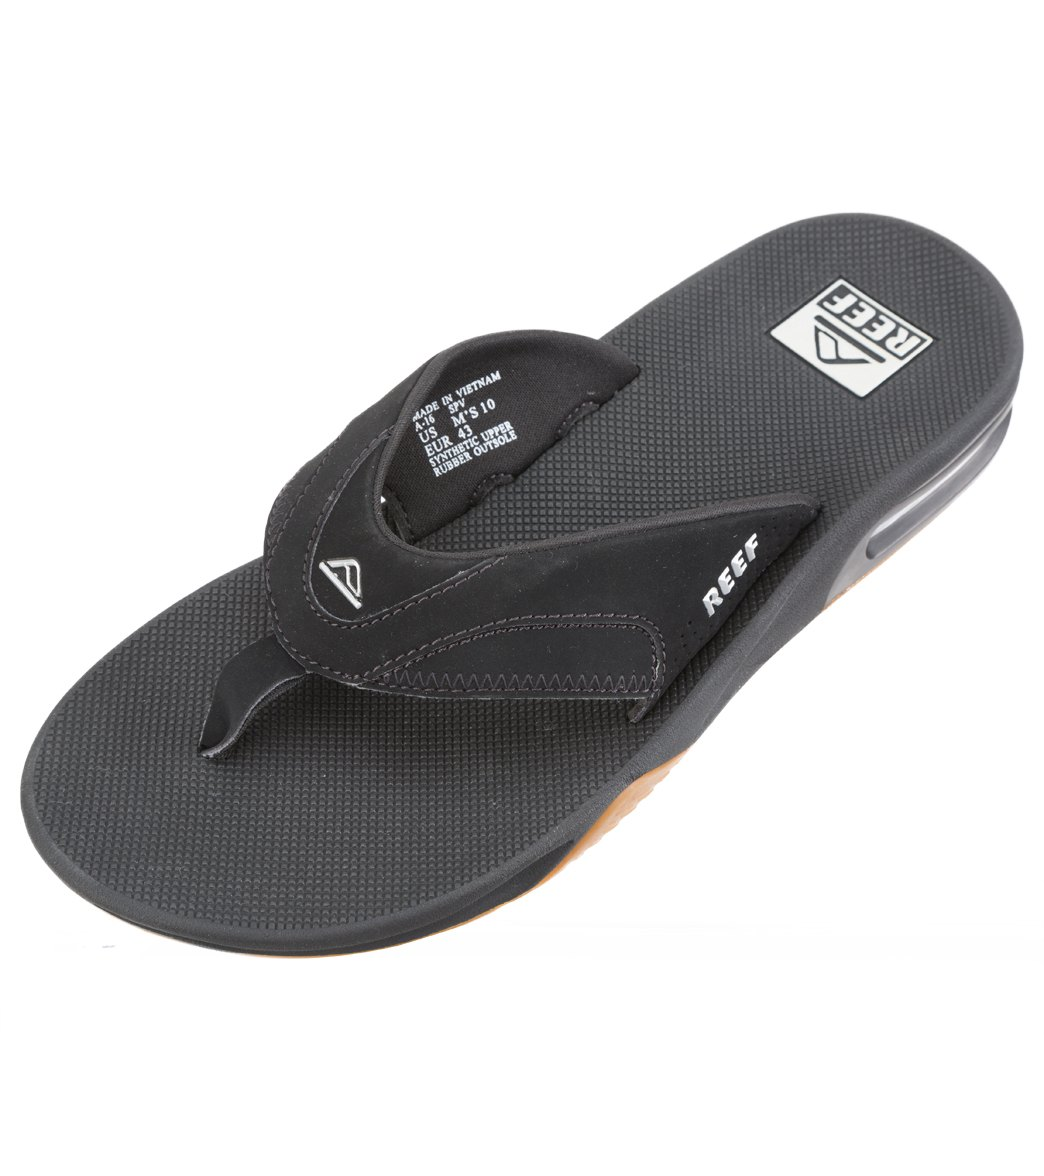 20fc77b438c Reef Men s Fanning Flip Flop at SwimOutlet.com - Free Shipping